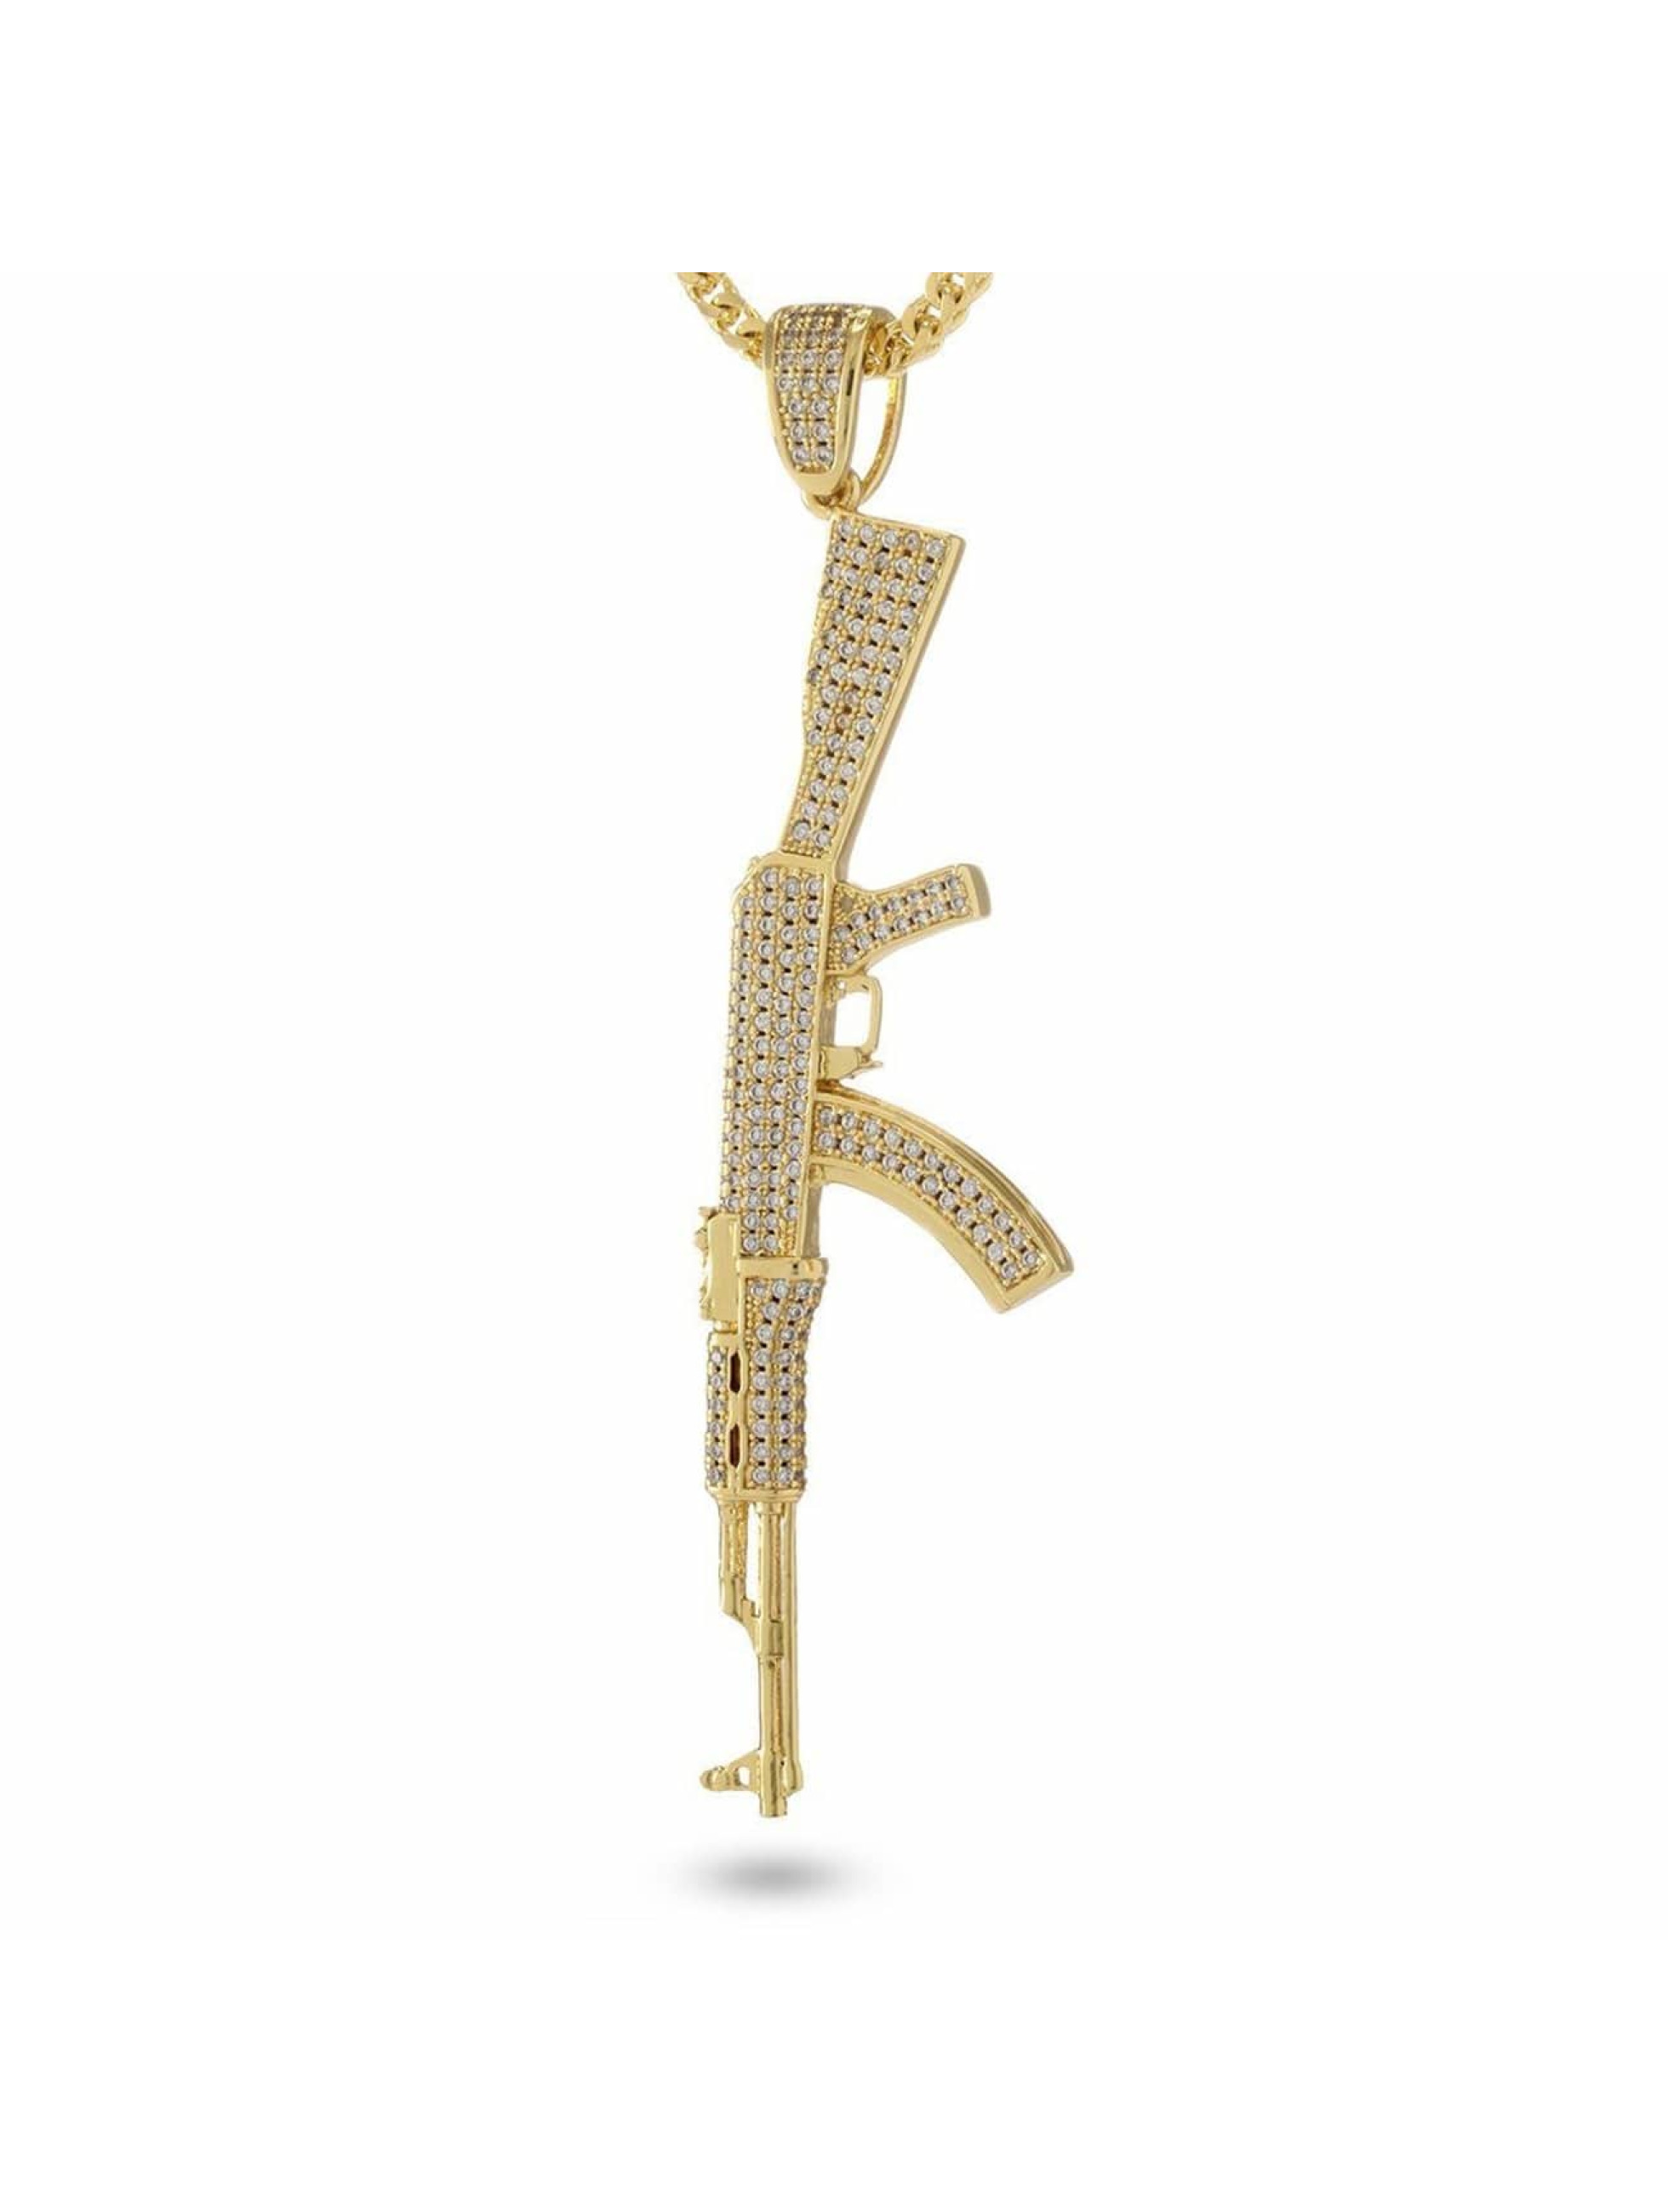 KING ICE Collier Studded AK-47 or